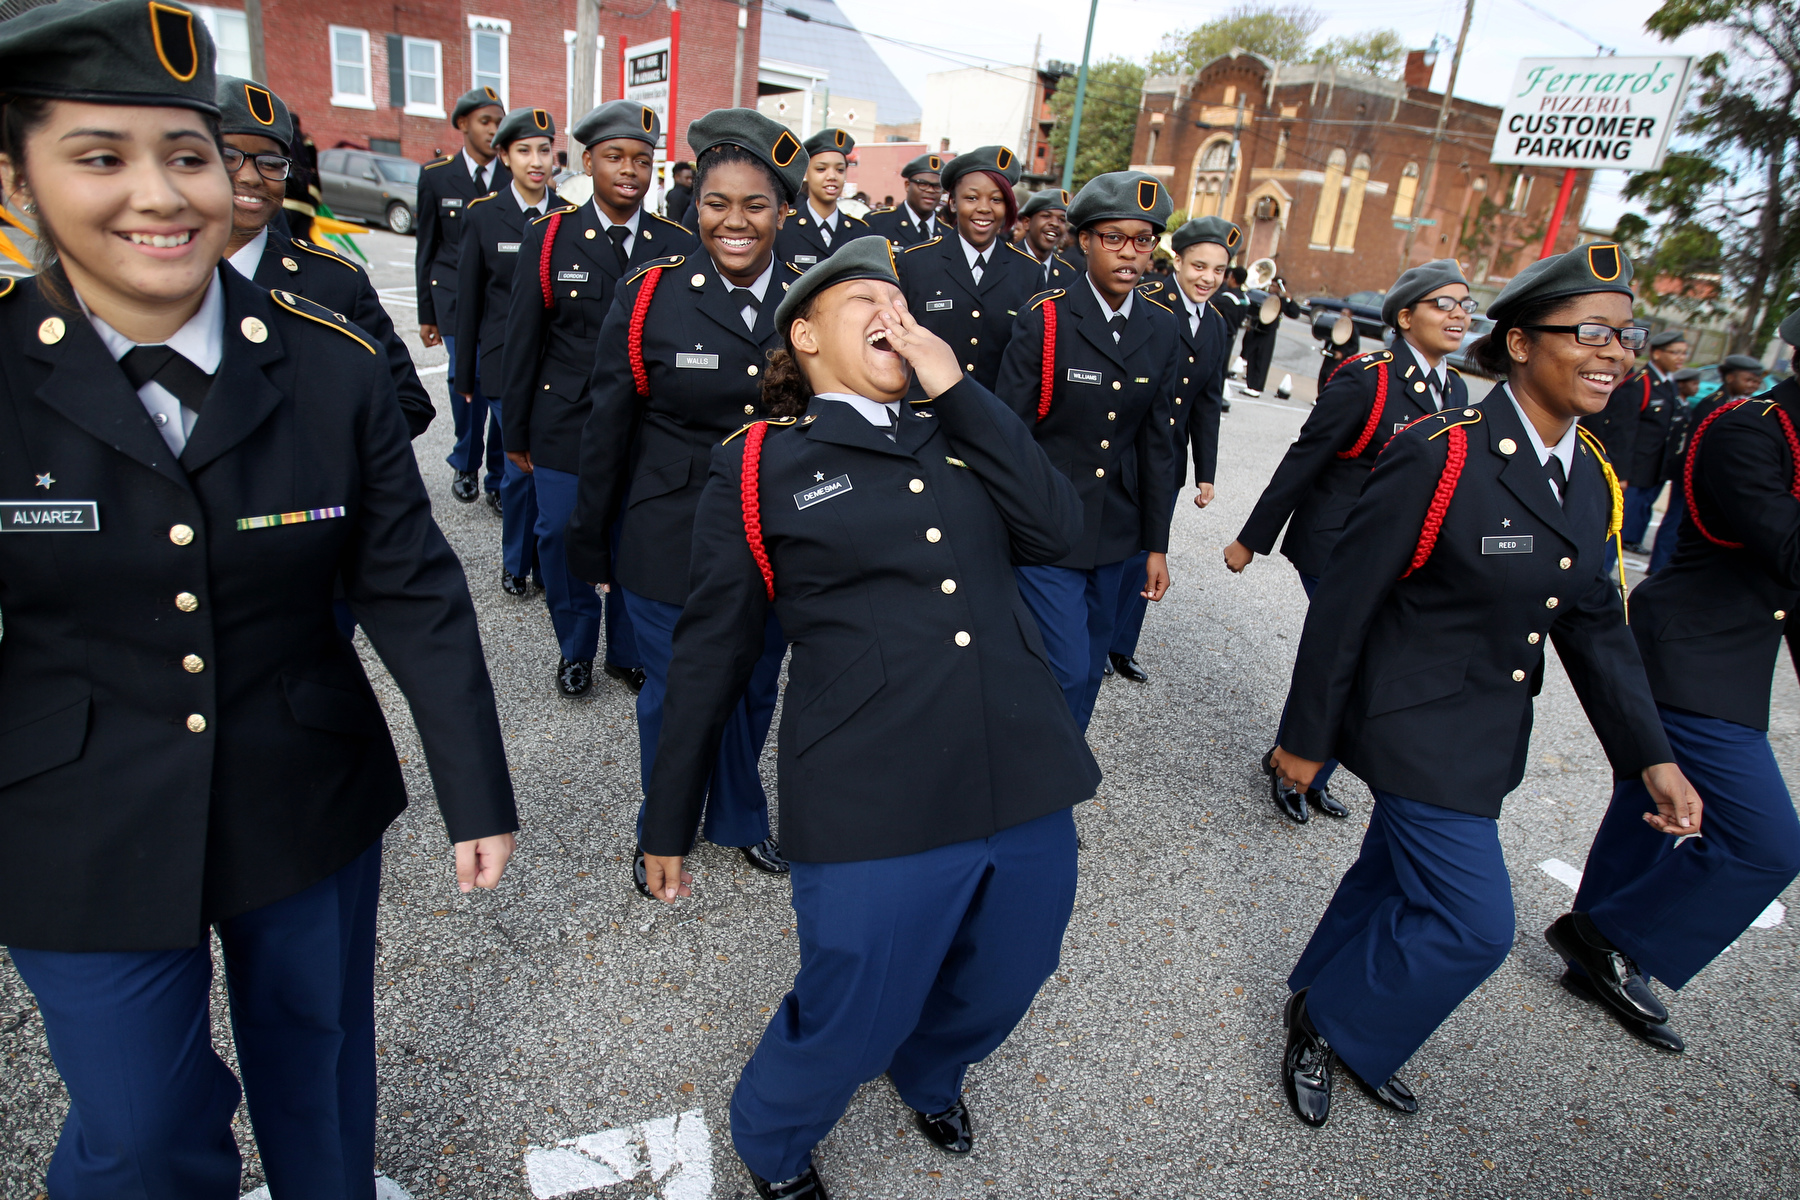 November 11, 2015 - Overton High School sophomore Keona Demesma, 15, laughs while the school's ROTC lines up and practicing before the start of the annual Veteran's Day parade through downtown Memphis. (Mike Brown/The Commercial Appeal)